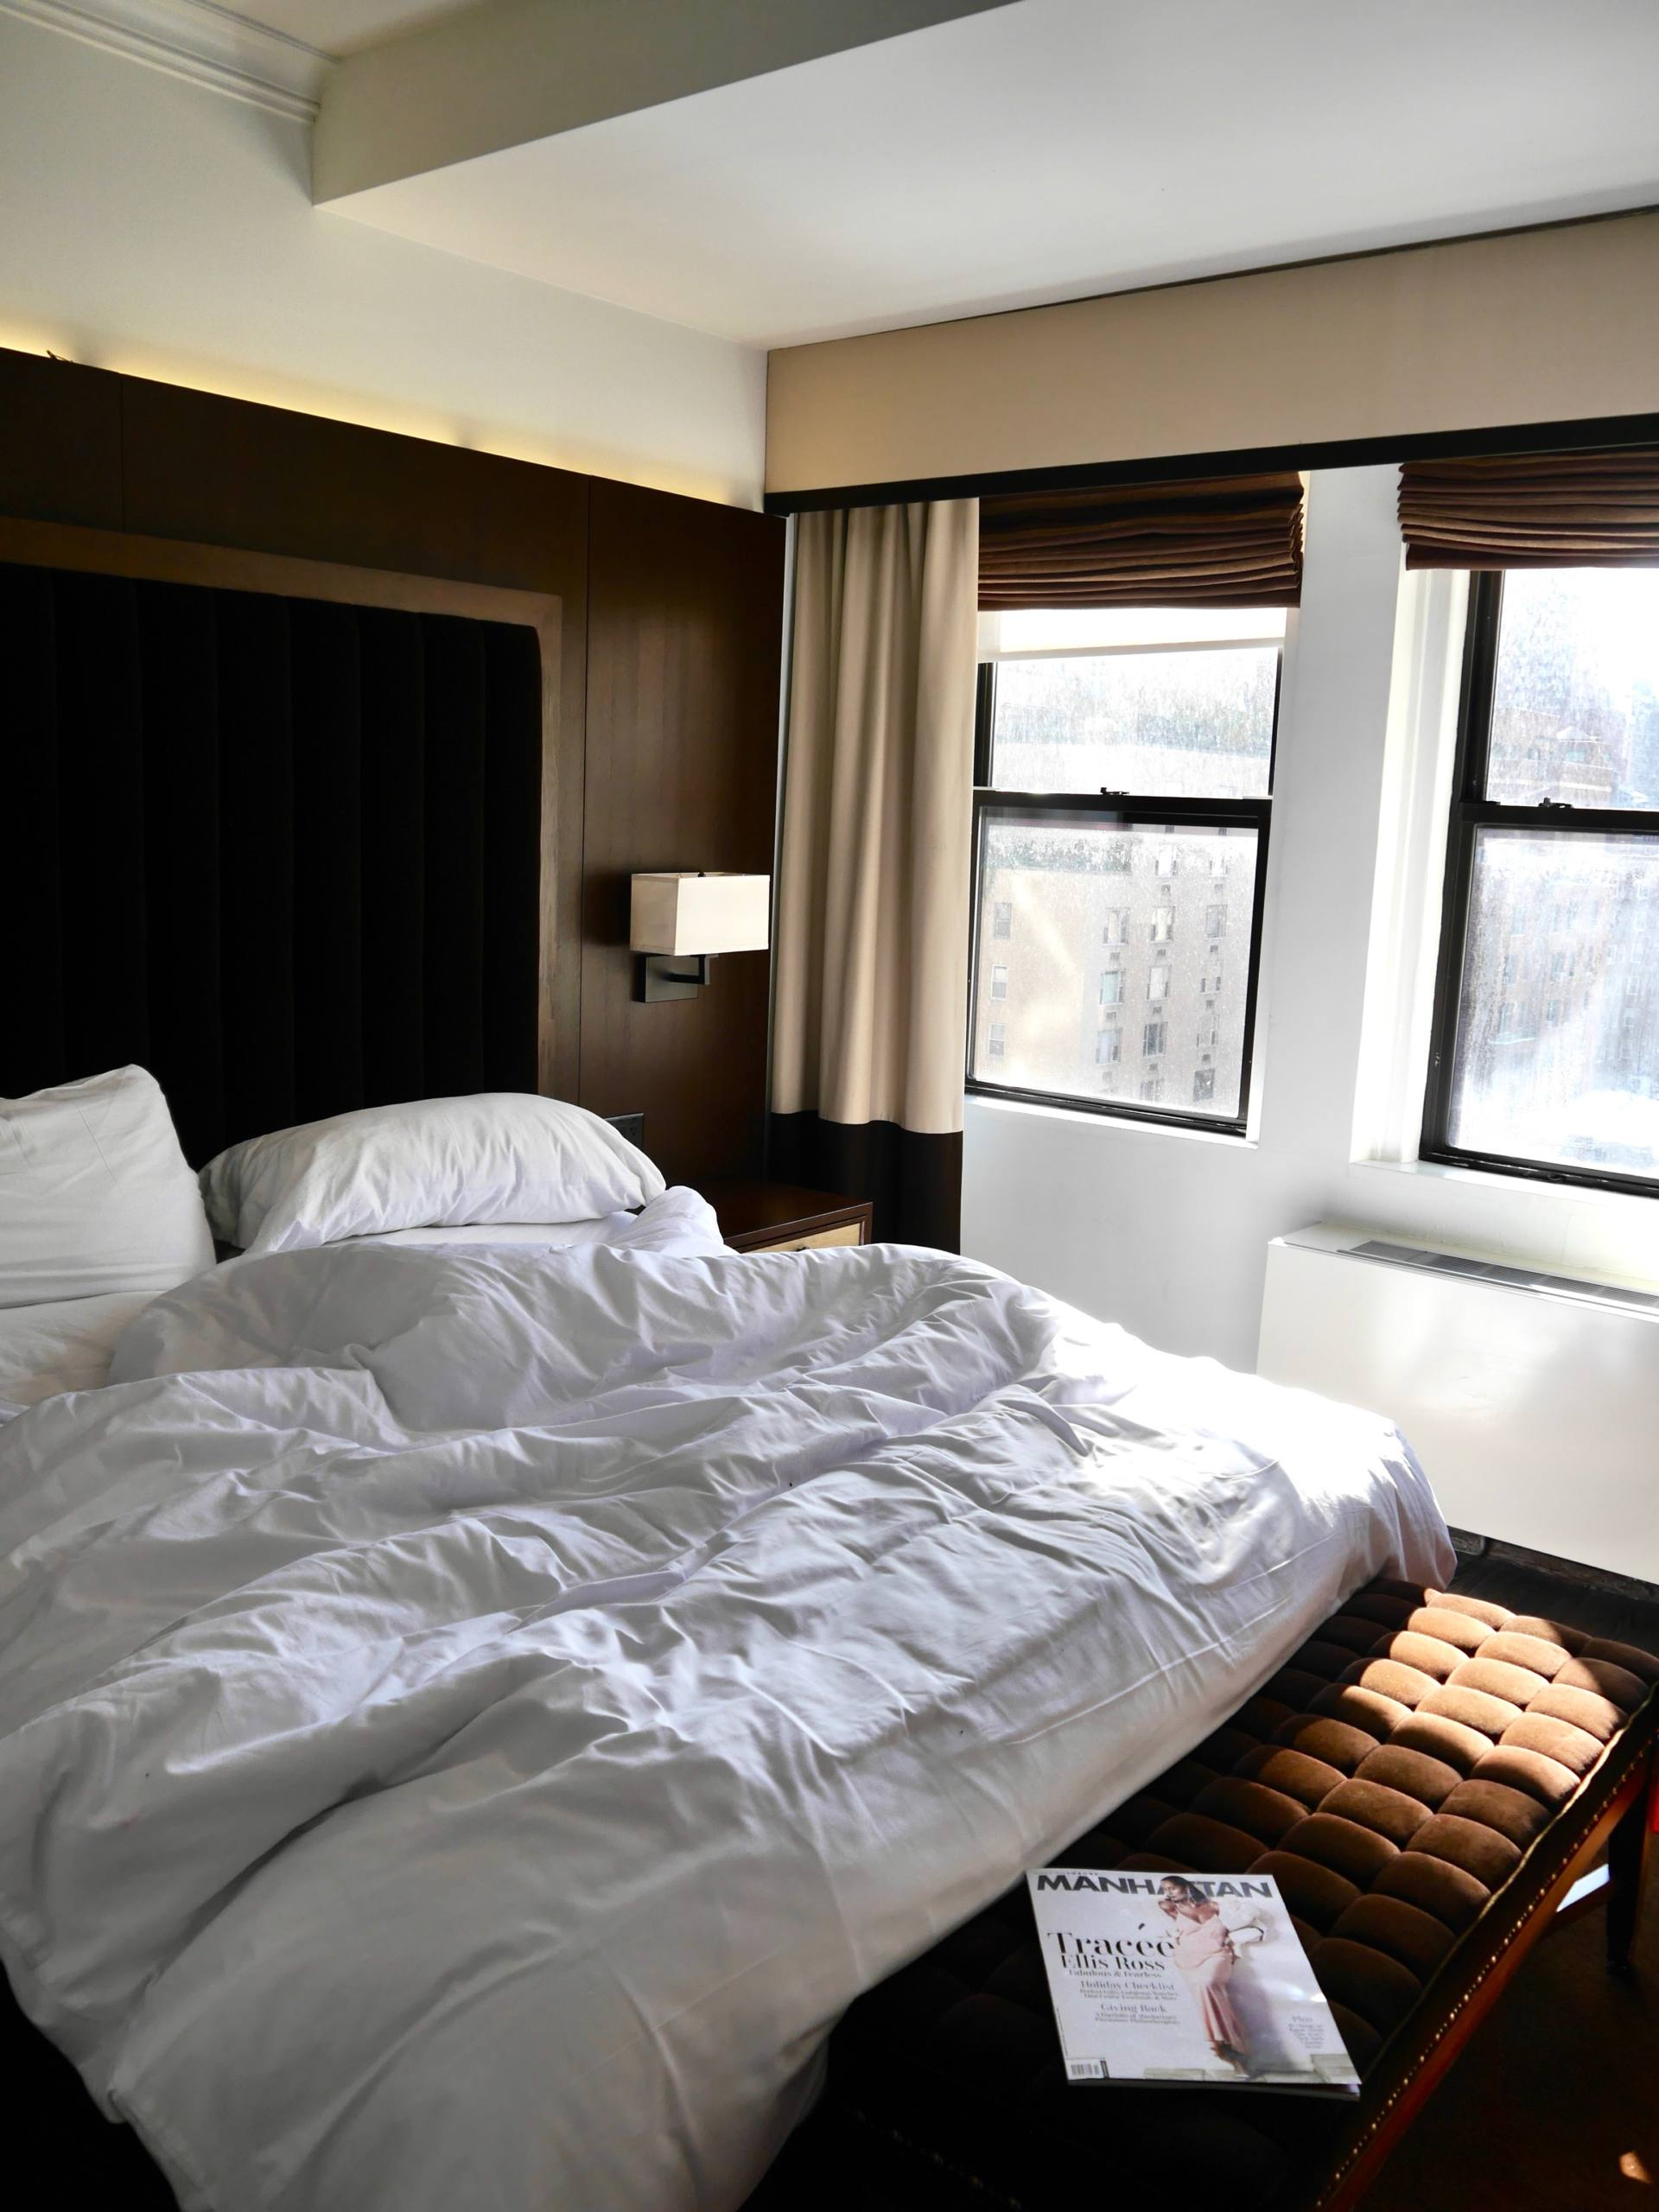 Hotels In New York Ny 10016